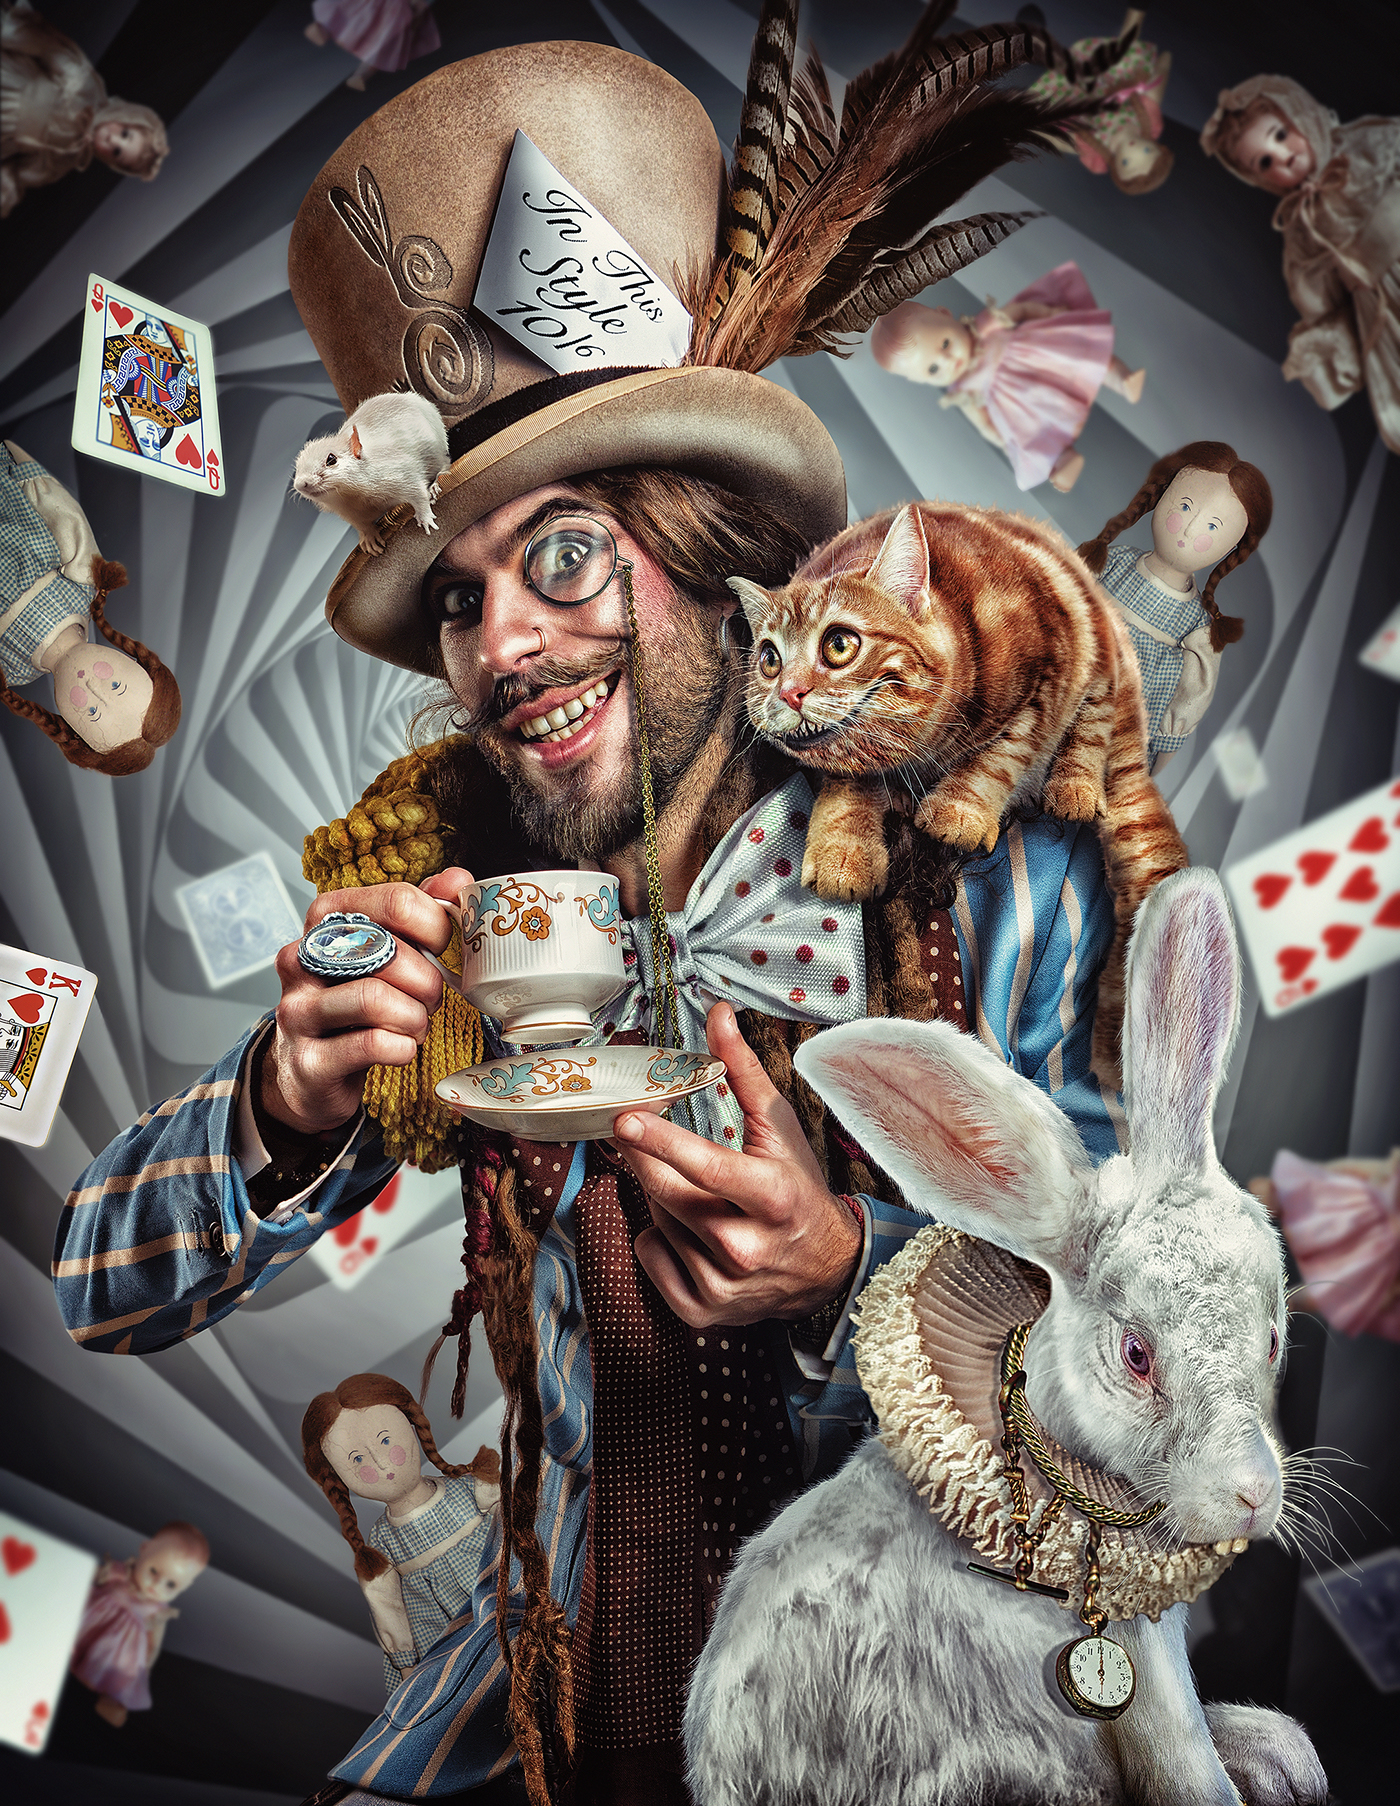 The Mad Hatter on Behance